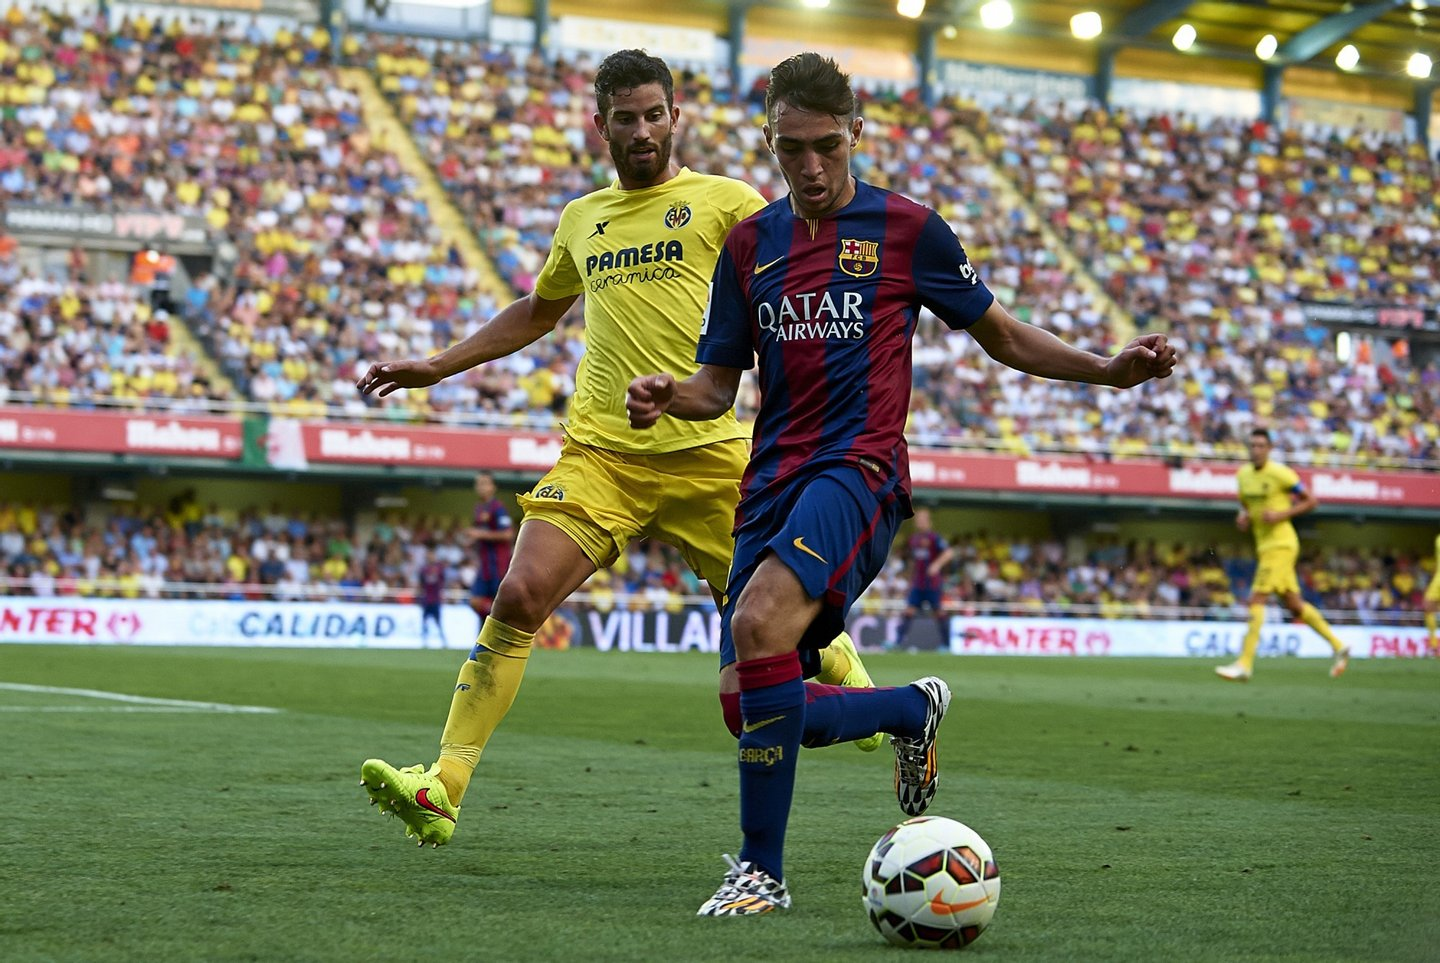 VILLARREAL, SPAIN - AUGUST 31:  Munir (R) of Barcelona is closed down by Mateo Pablo Musacchio of Villarreal during the La Liga match between Villarreal CF and FC Barcelona at El Madrigal stadium on August 31, 2014 in Villarreal, Spain.  (Photo by Manuel Queimadelos Alonso/Getty Images)